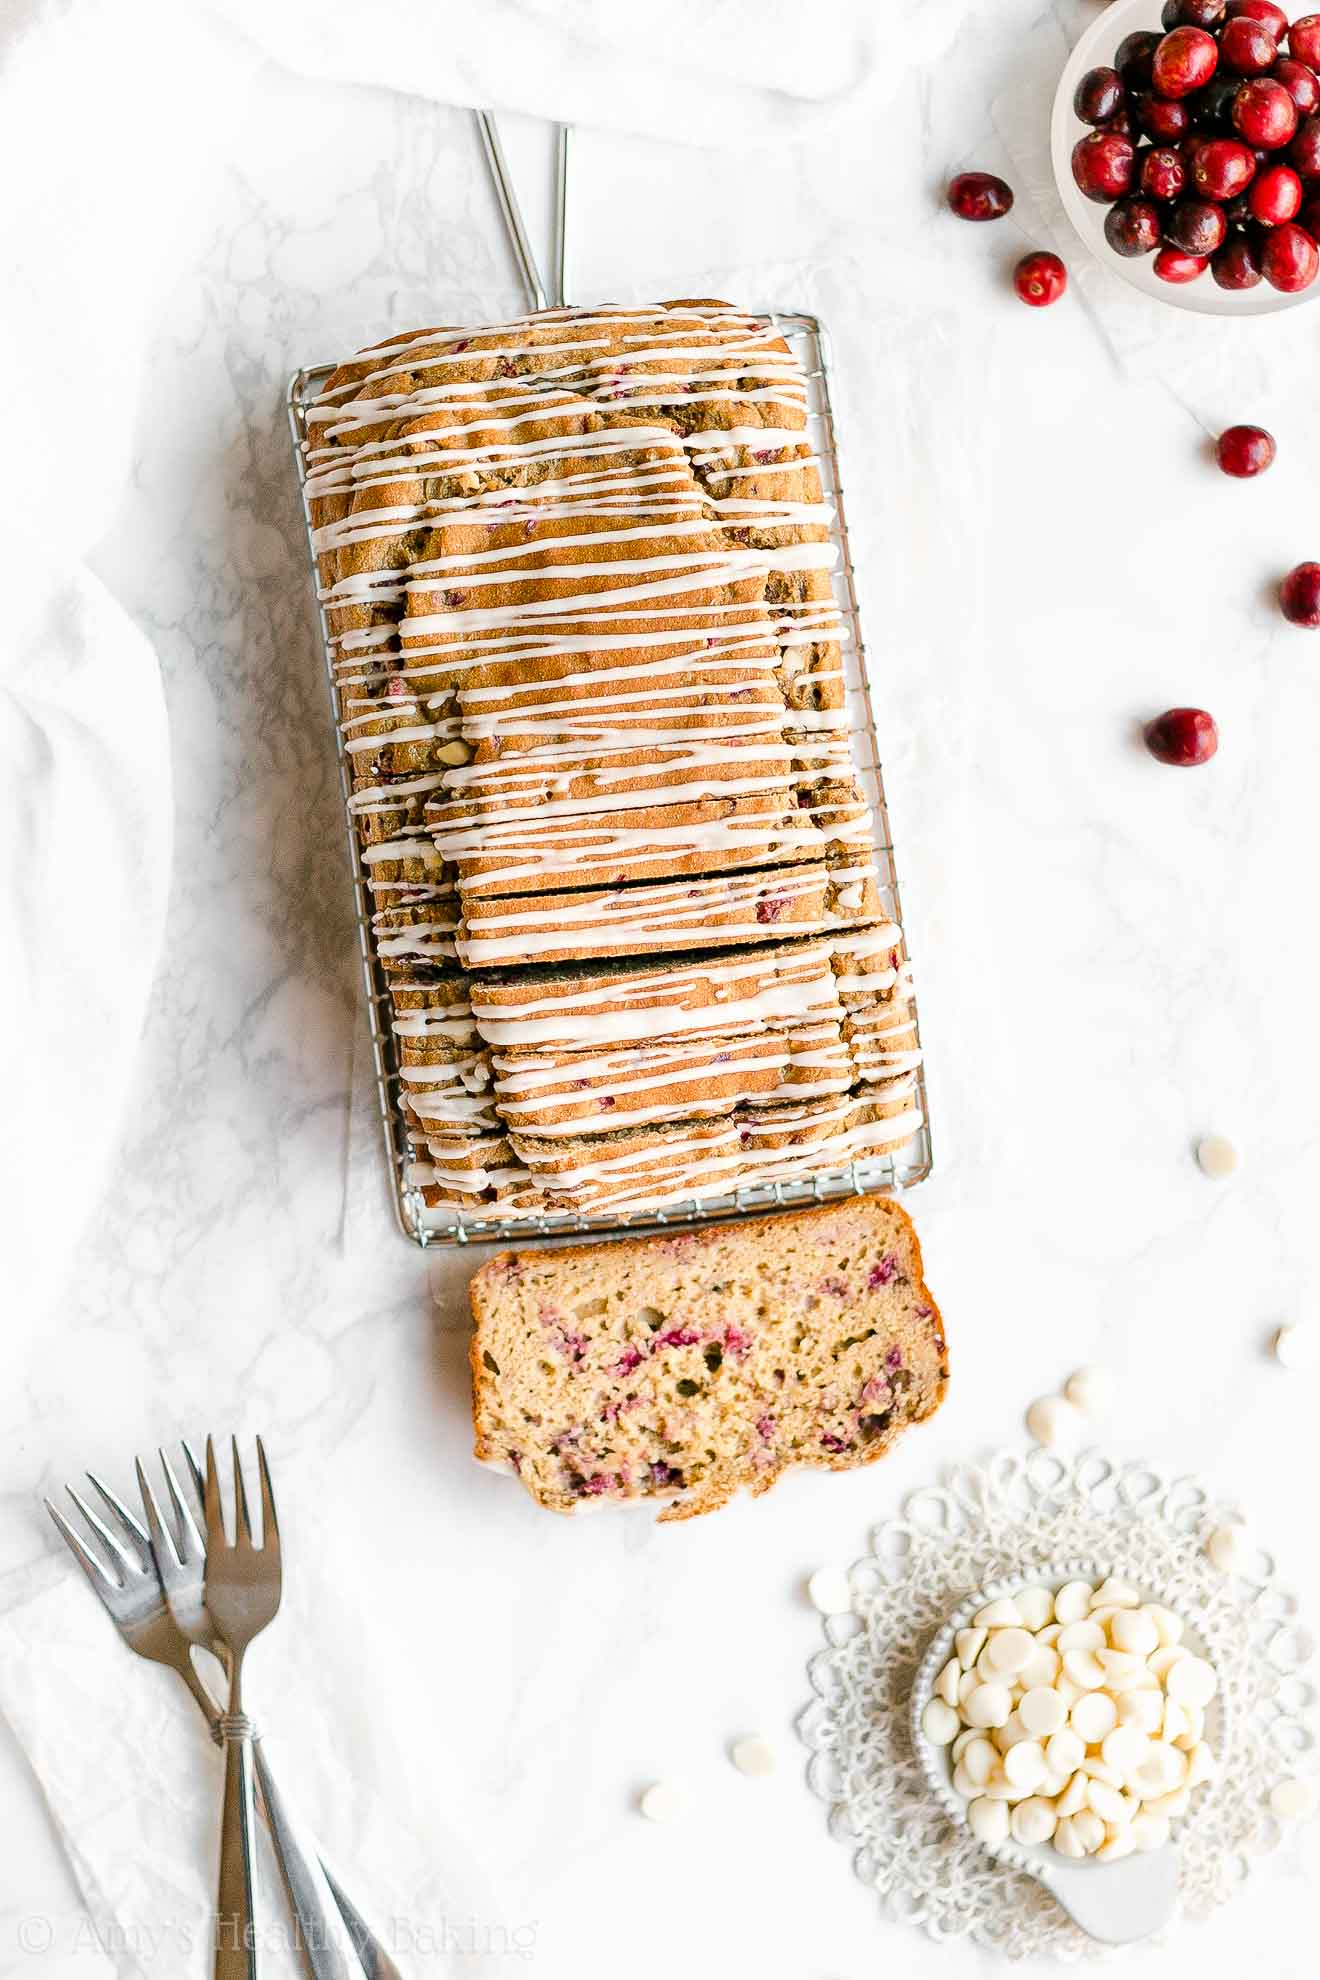 Healthy White Chocolate Cranberry Pound Cake with Weight Watchers Points